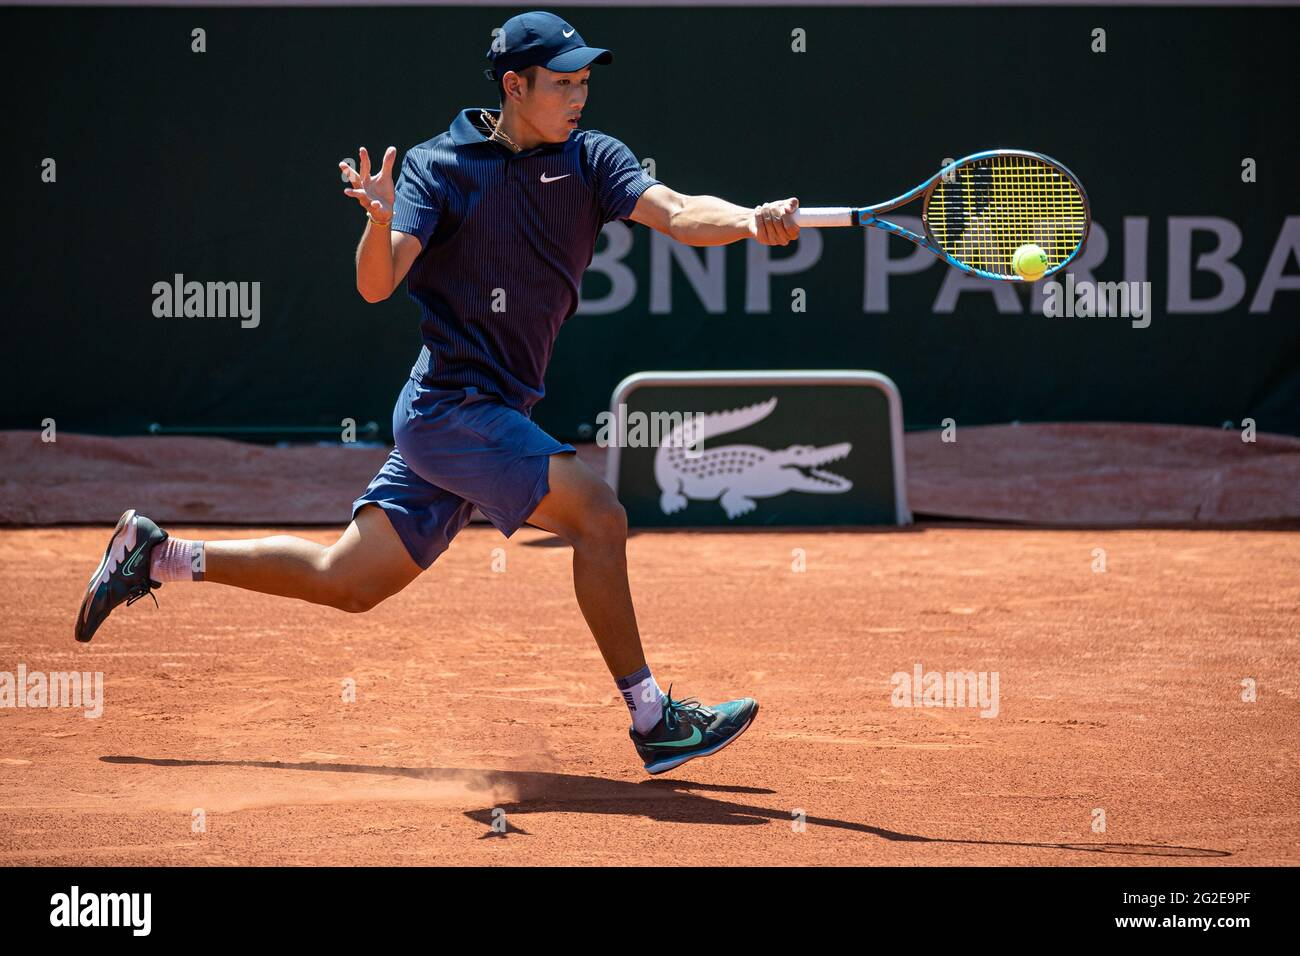 Paris, France. 10th June, 2021. Shang Juncheng of China returns the ball during the boys' singles quarterfinal match between Shang Juncheng of China and Sean Cuenin of France at the French Open tennis tournament at Roland Garros in Paris, France, June 10, 2021. Credit: Aurelien Morissard/Xinhua/Alamy Live News Stock Photo